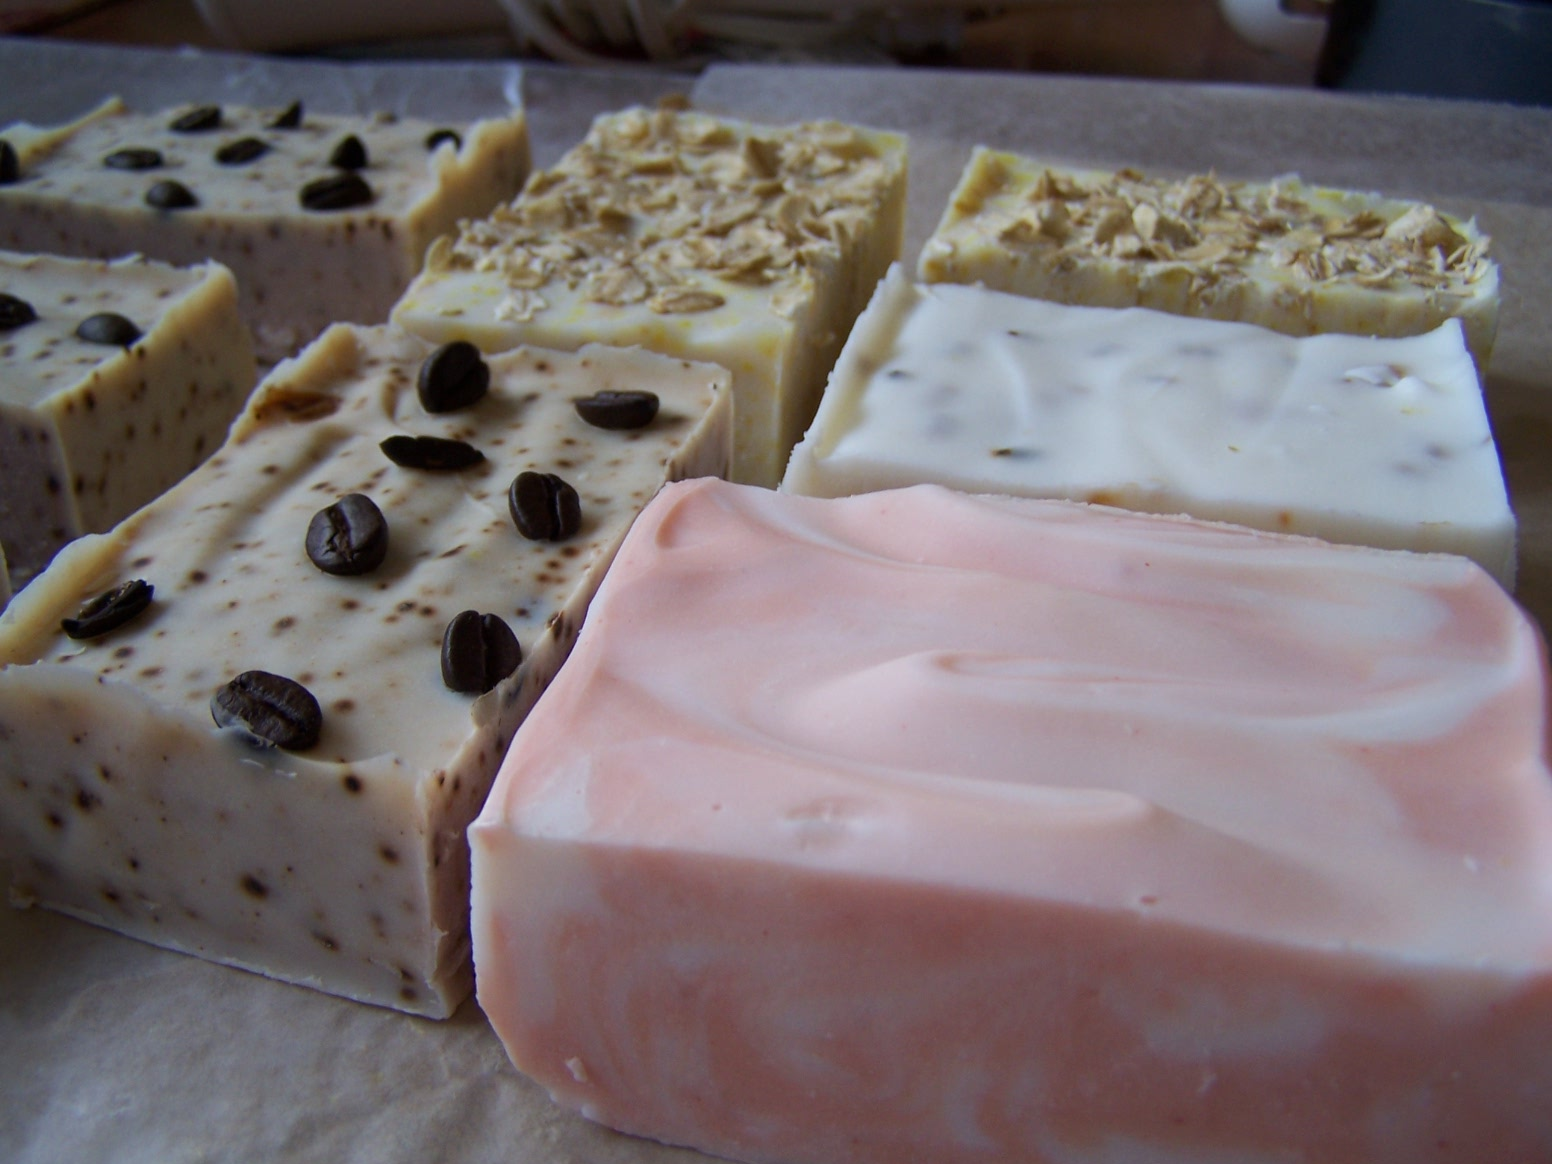 how to make lye soap the old fashioned way